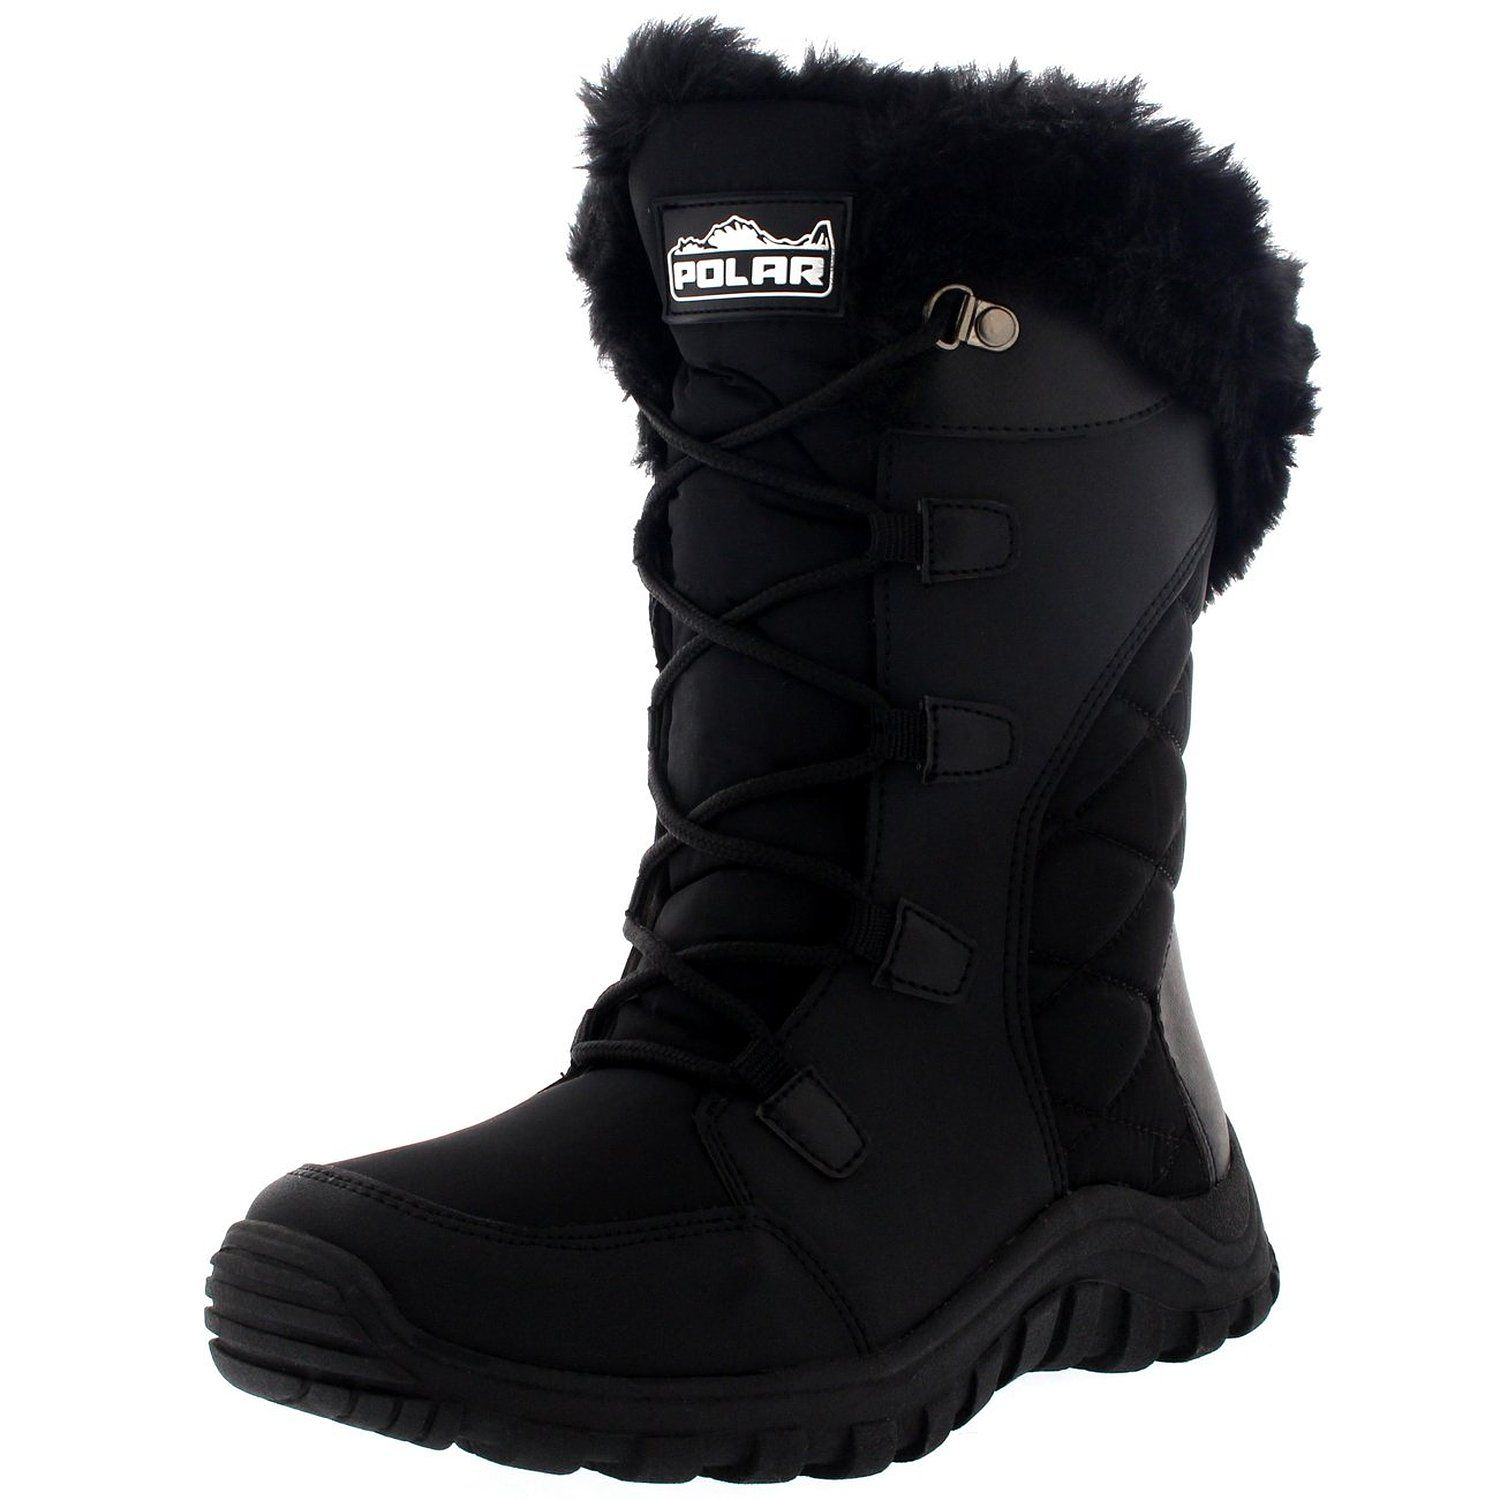 Womens Quilted Lace Up Waterproof Fur Lined Cuff Snow Rain Duck Boot *** Want additional info? Click on the image.